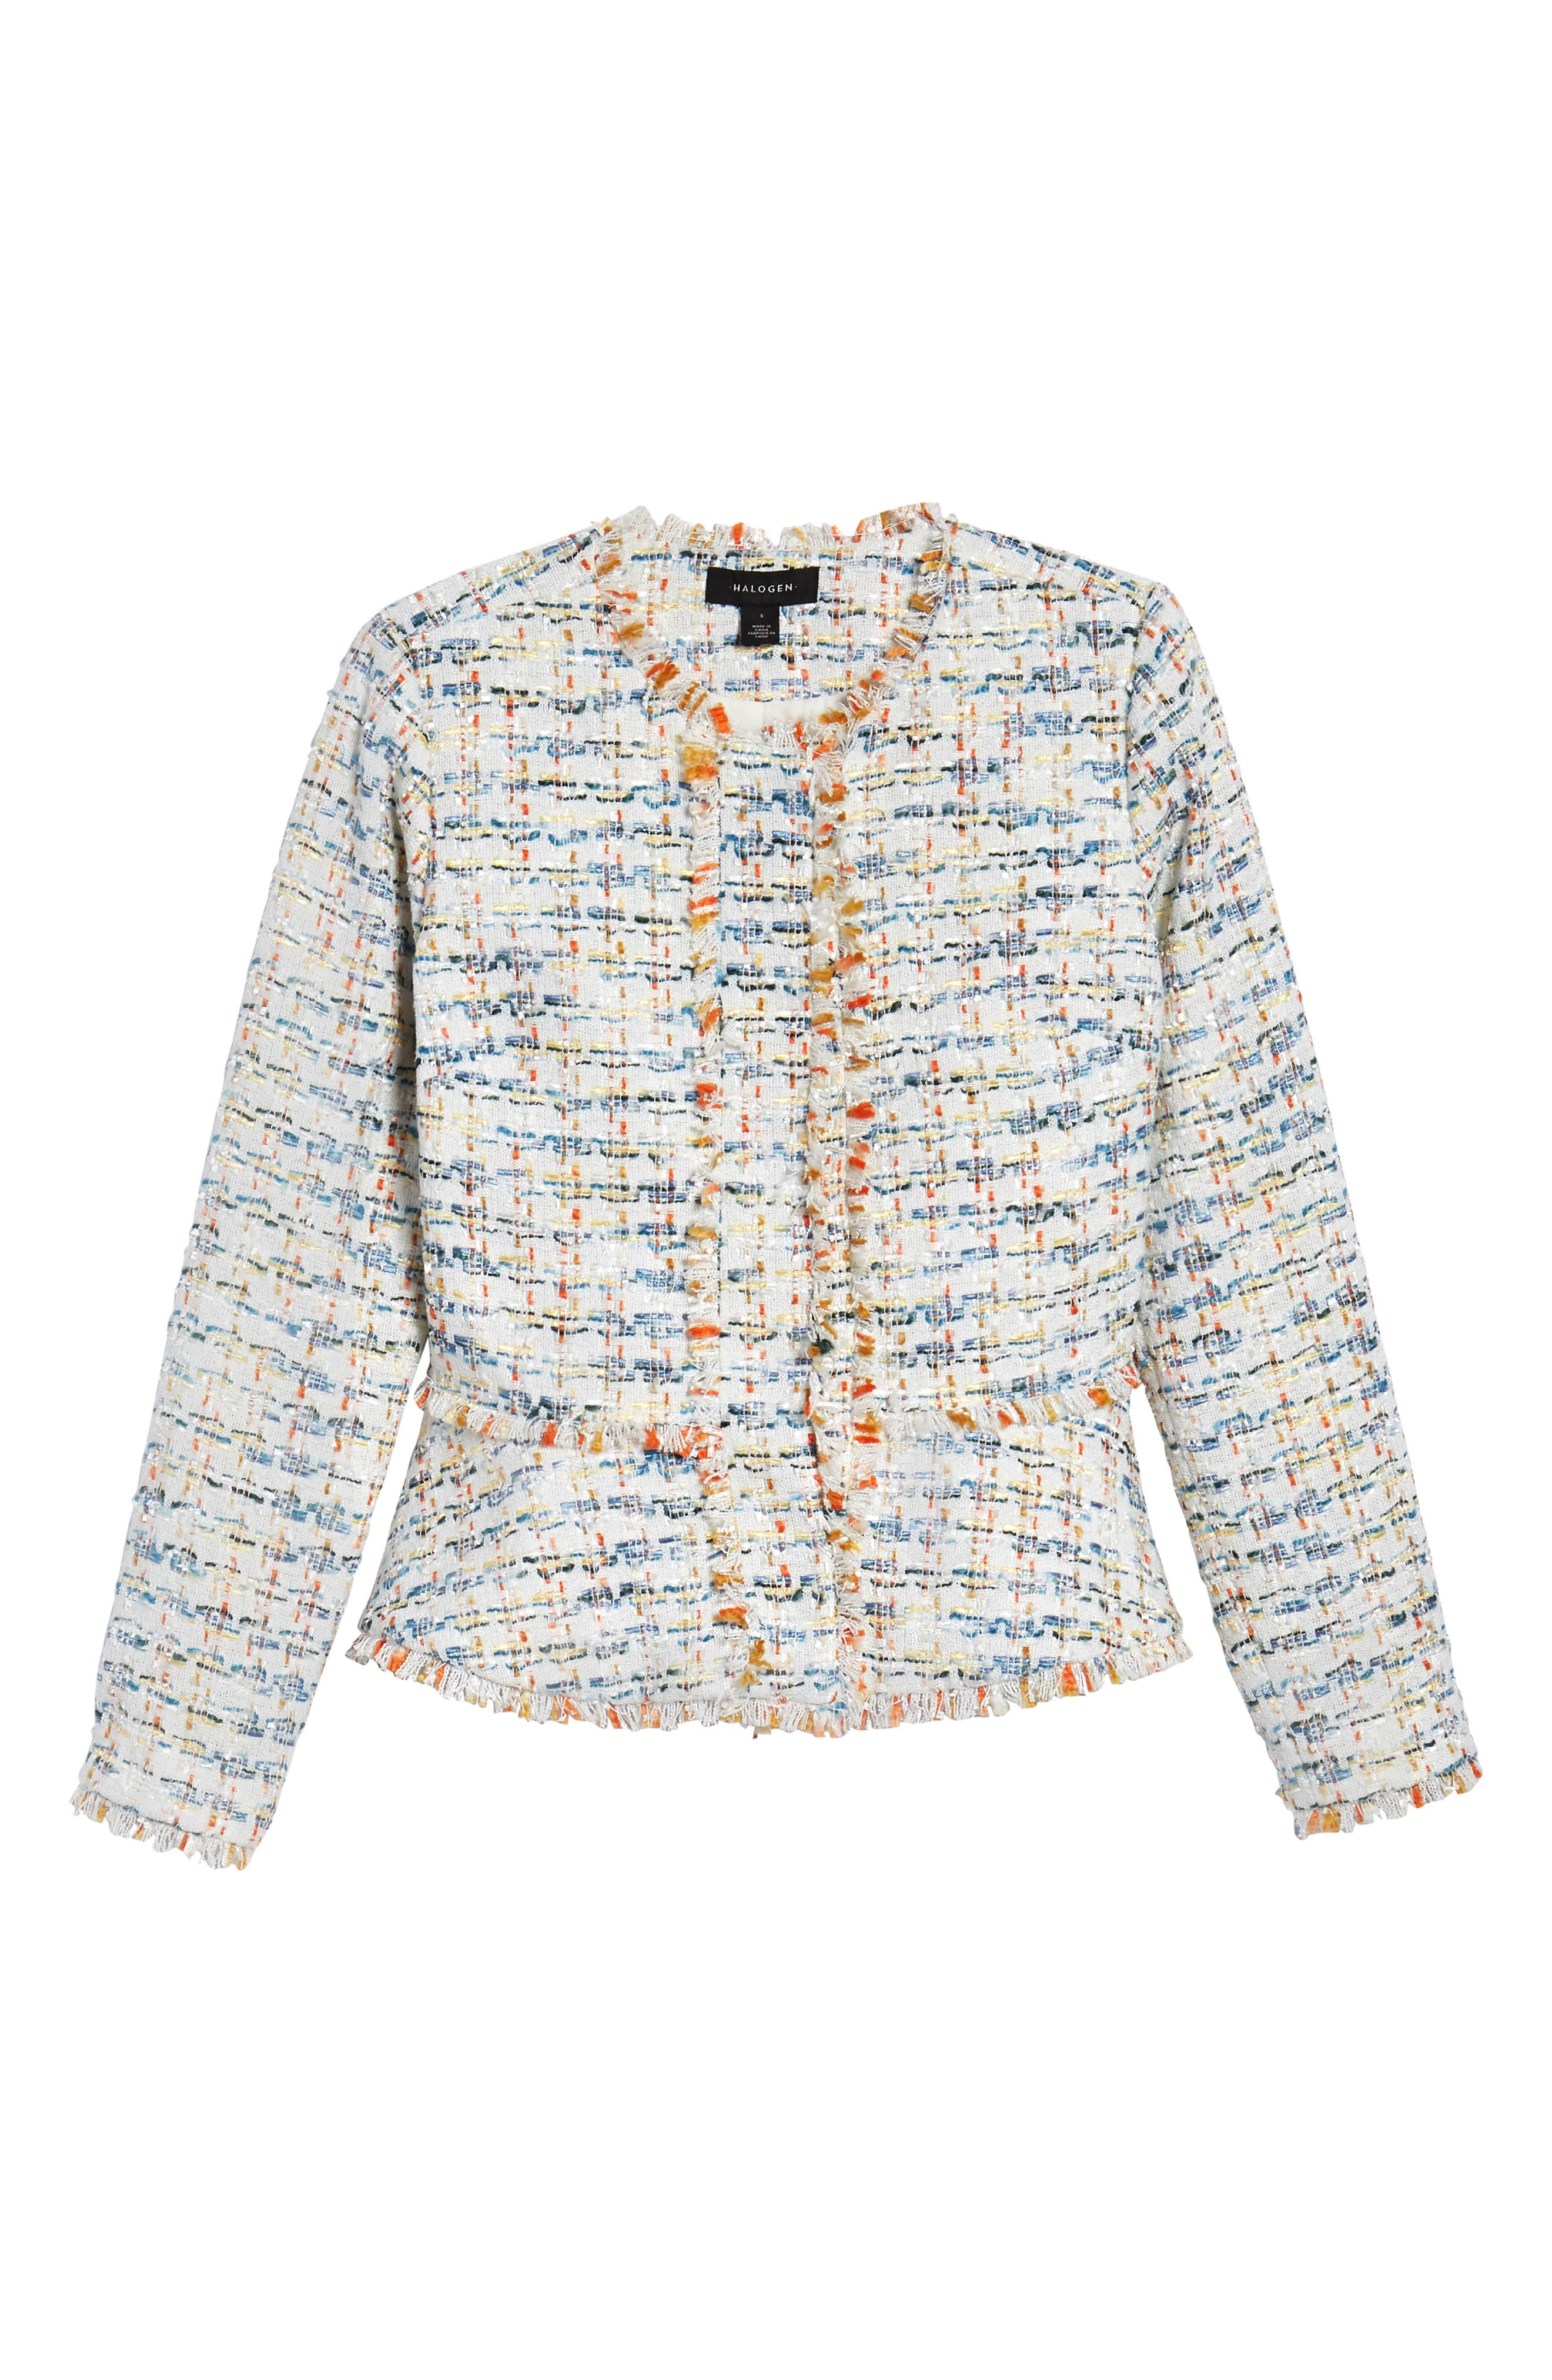 Tweed Peplum Jacket,                             Alternate thumbnail 7, color,                             Ivory Multi Tweed